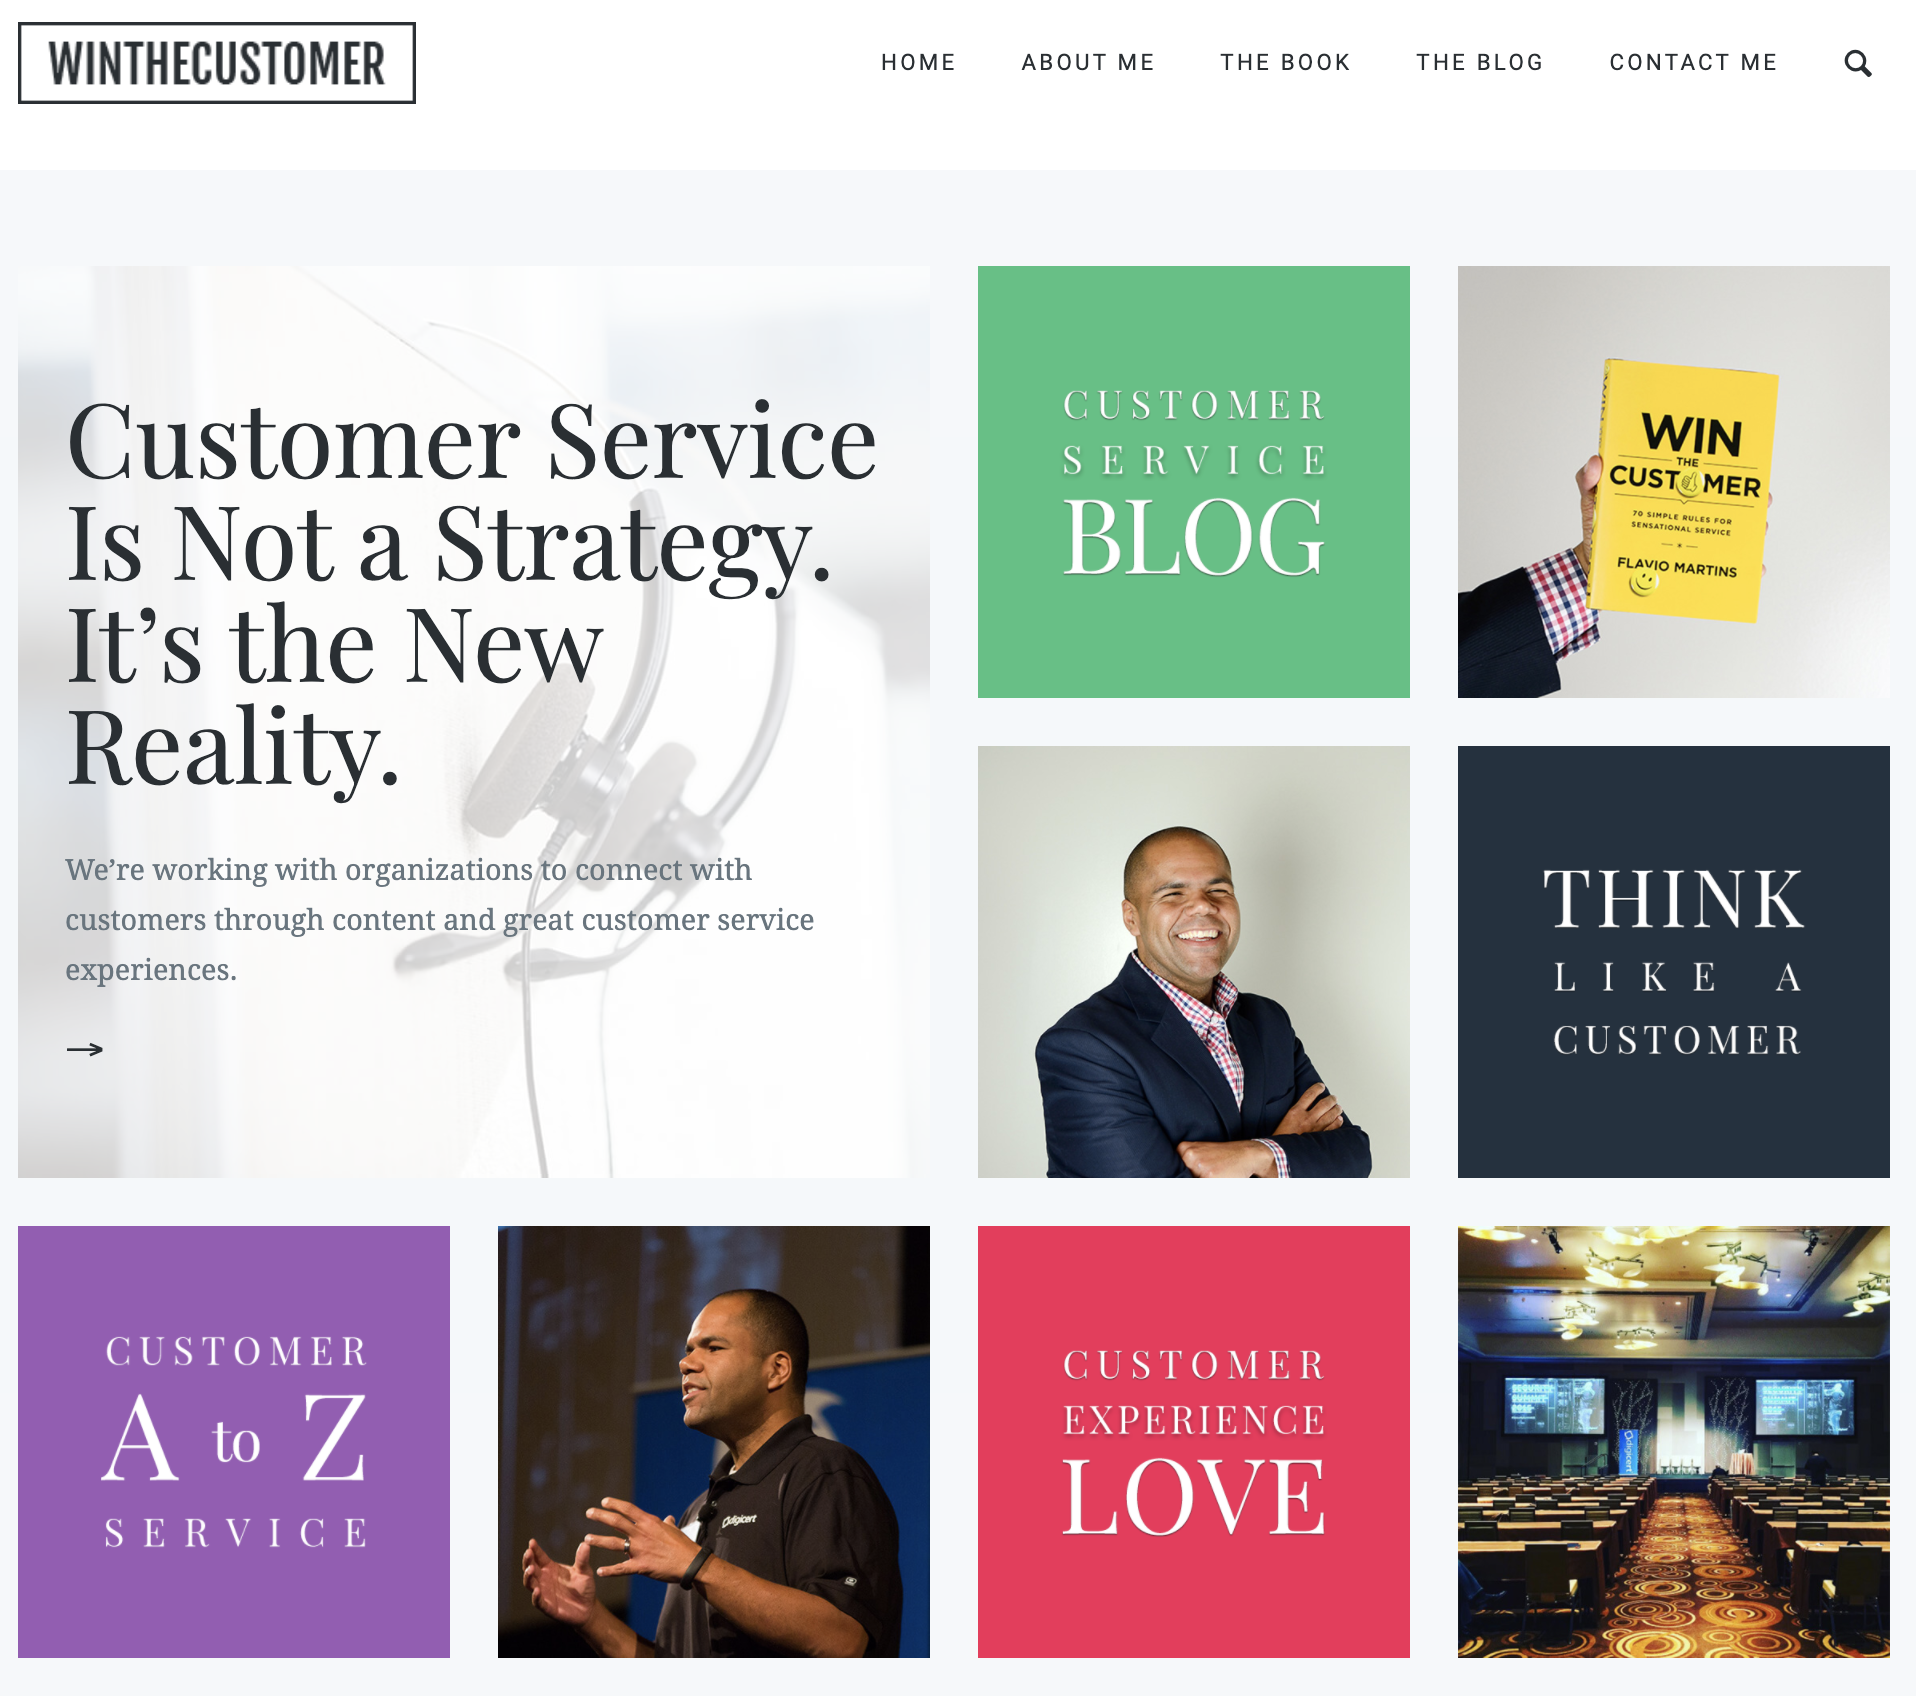 Top customer service blogs - win with the customer